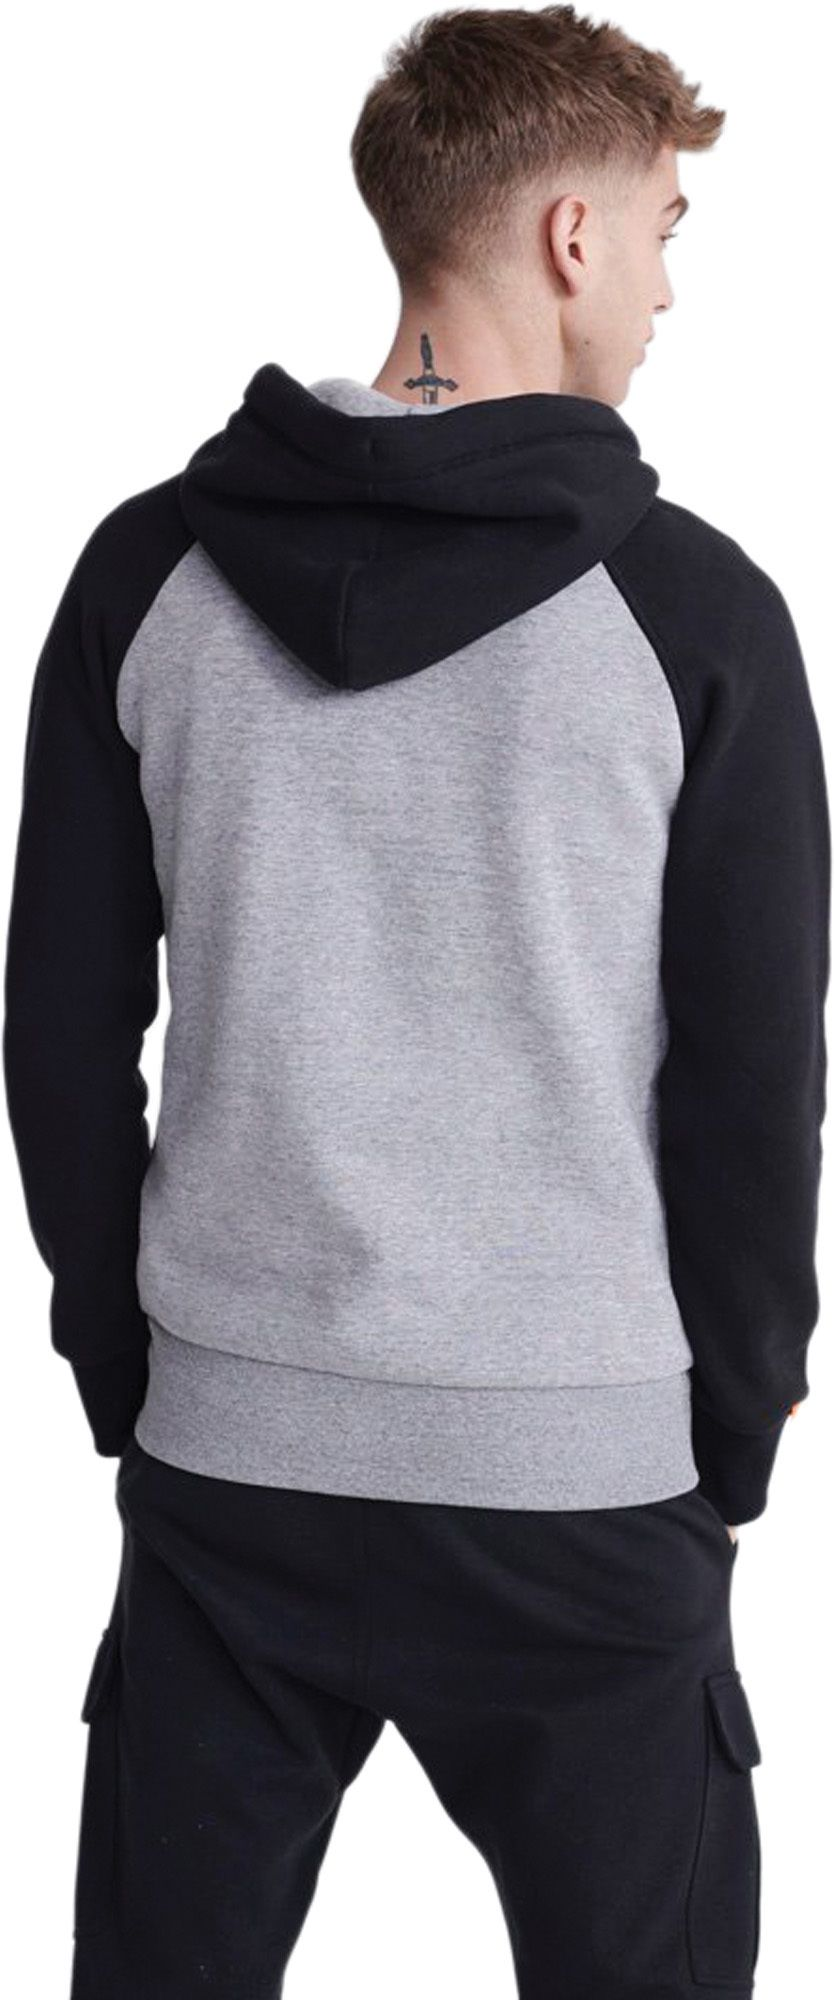 Superdry Orange Label Classic Raglan Zip Hoodie Charcoal